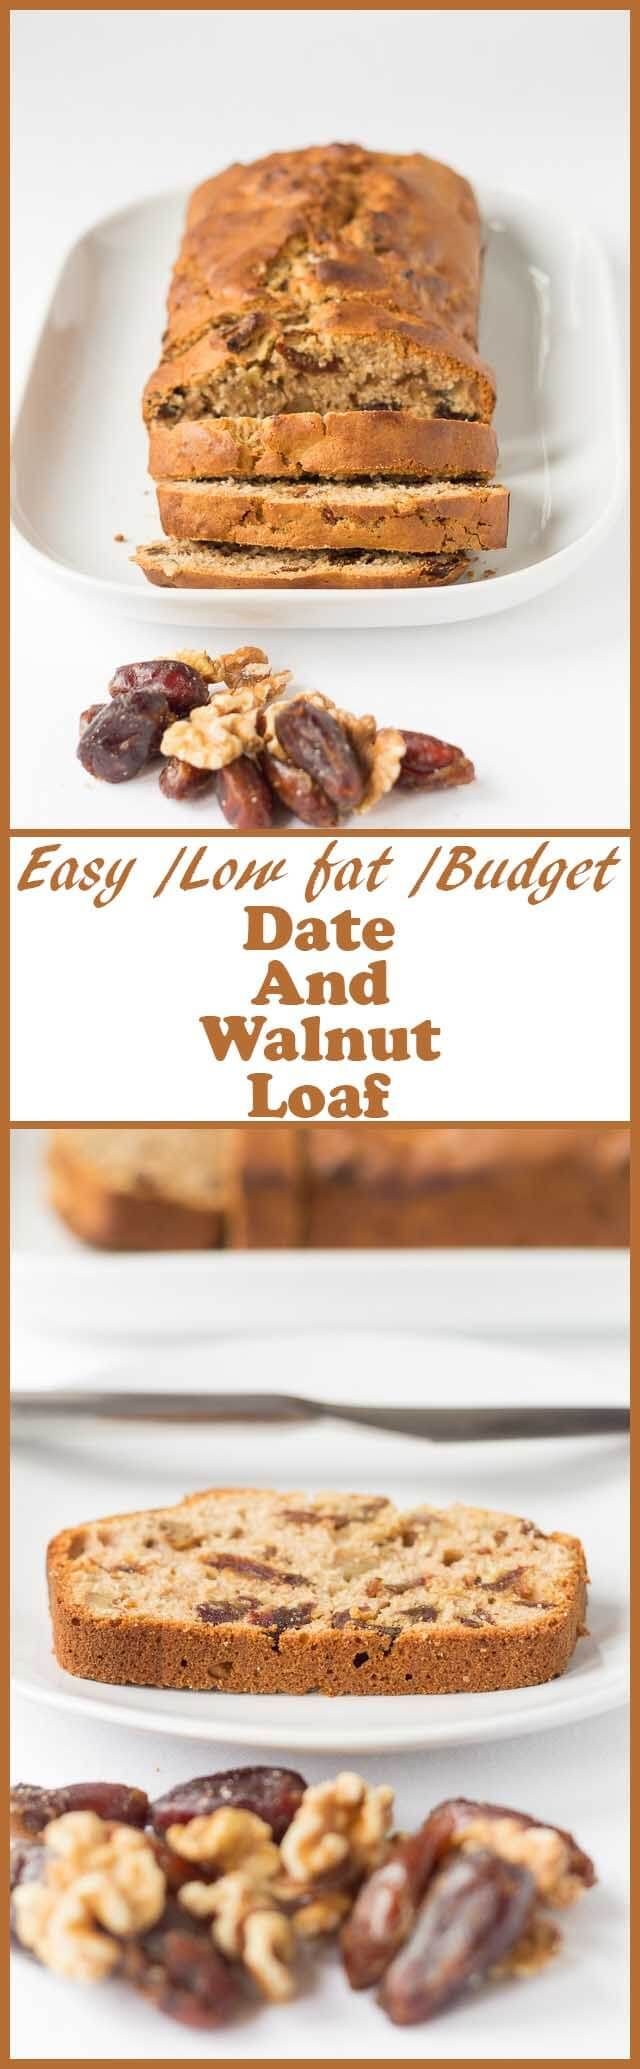 Date and walnut loaf is a really easy, low fat and delicious traditional Scottish teatime cake. It's a perfect bake for holidays and quick to whip up when you've got guests coming round!